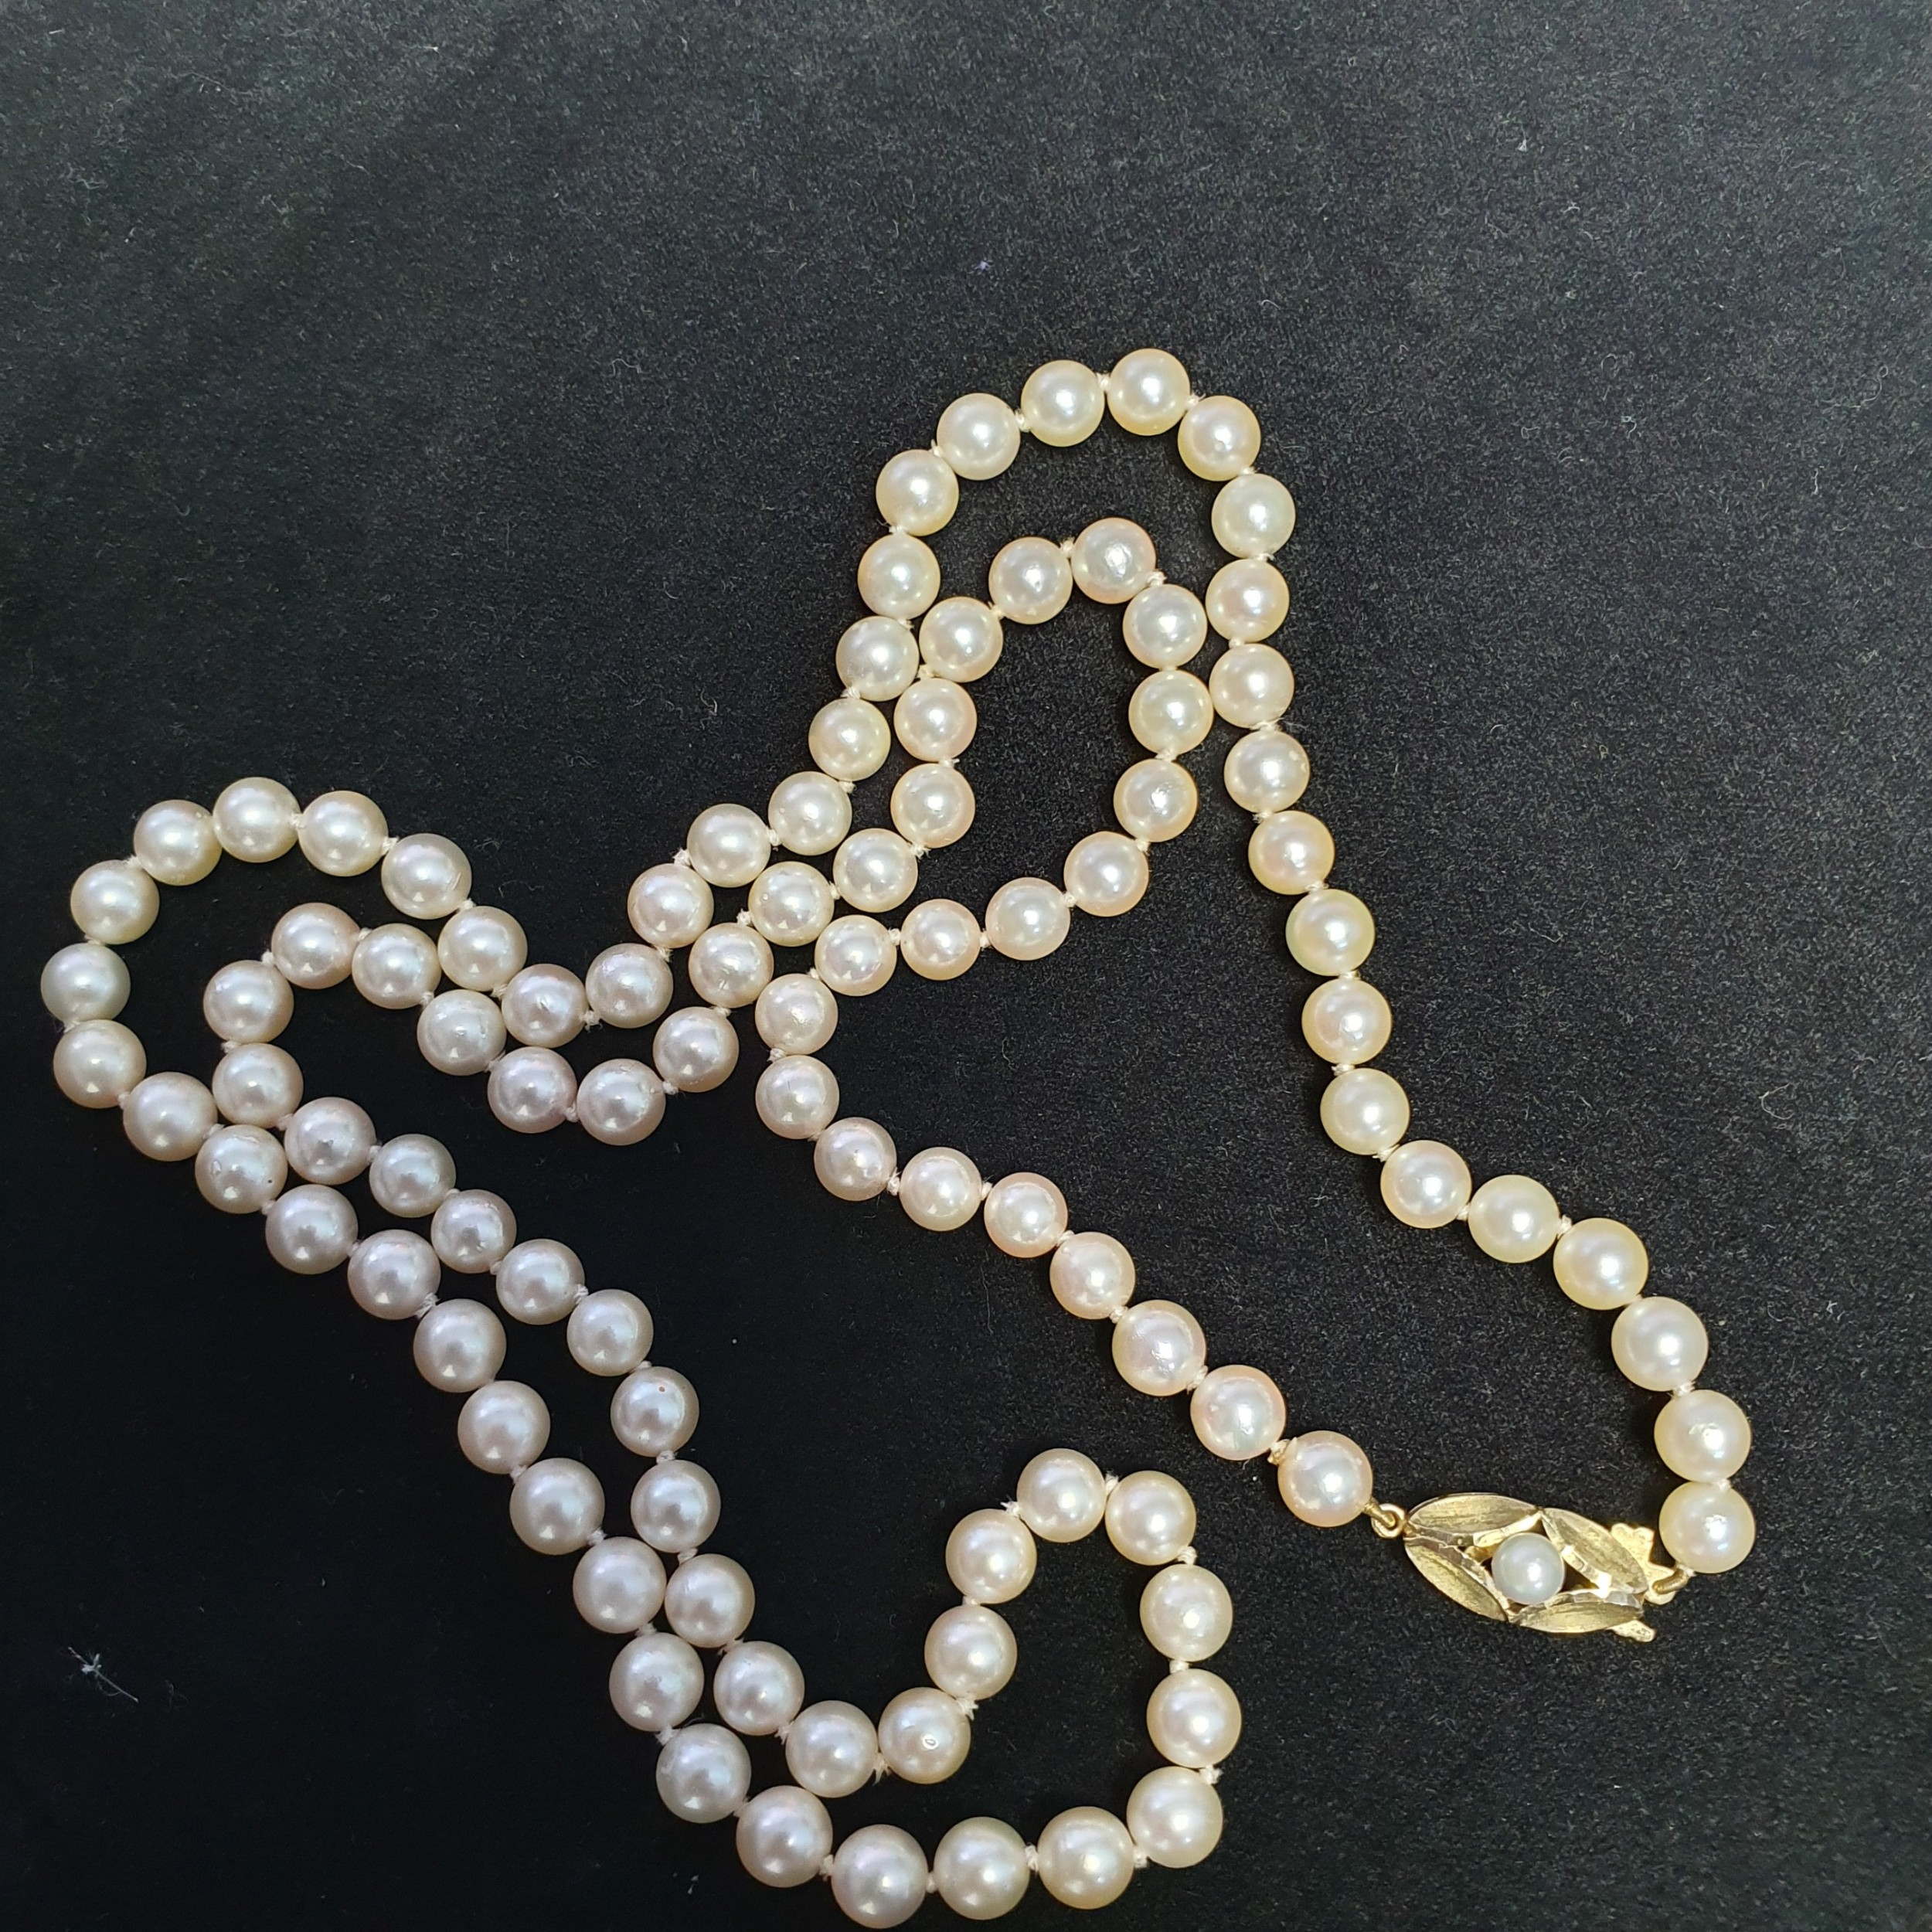 beautiful 27 vintage necklace cultured pearls with 9ct pearl set clasp